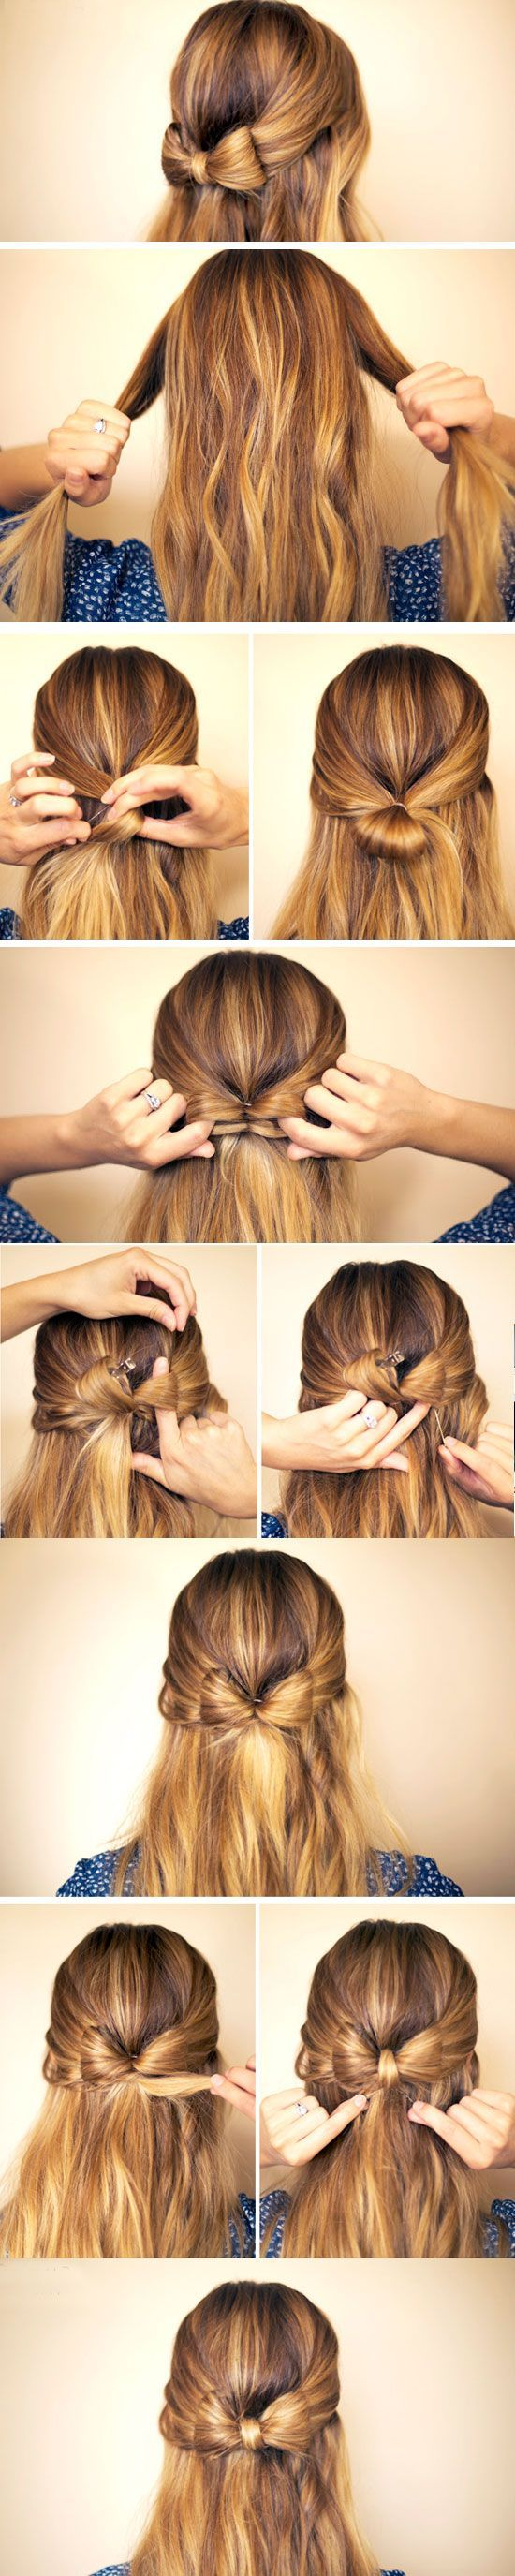 Hair Bow | Click Pic for 23 Step by Step Hairstyles for Long Hair | DIY Hairstyle Tutorials for Long Hair